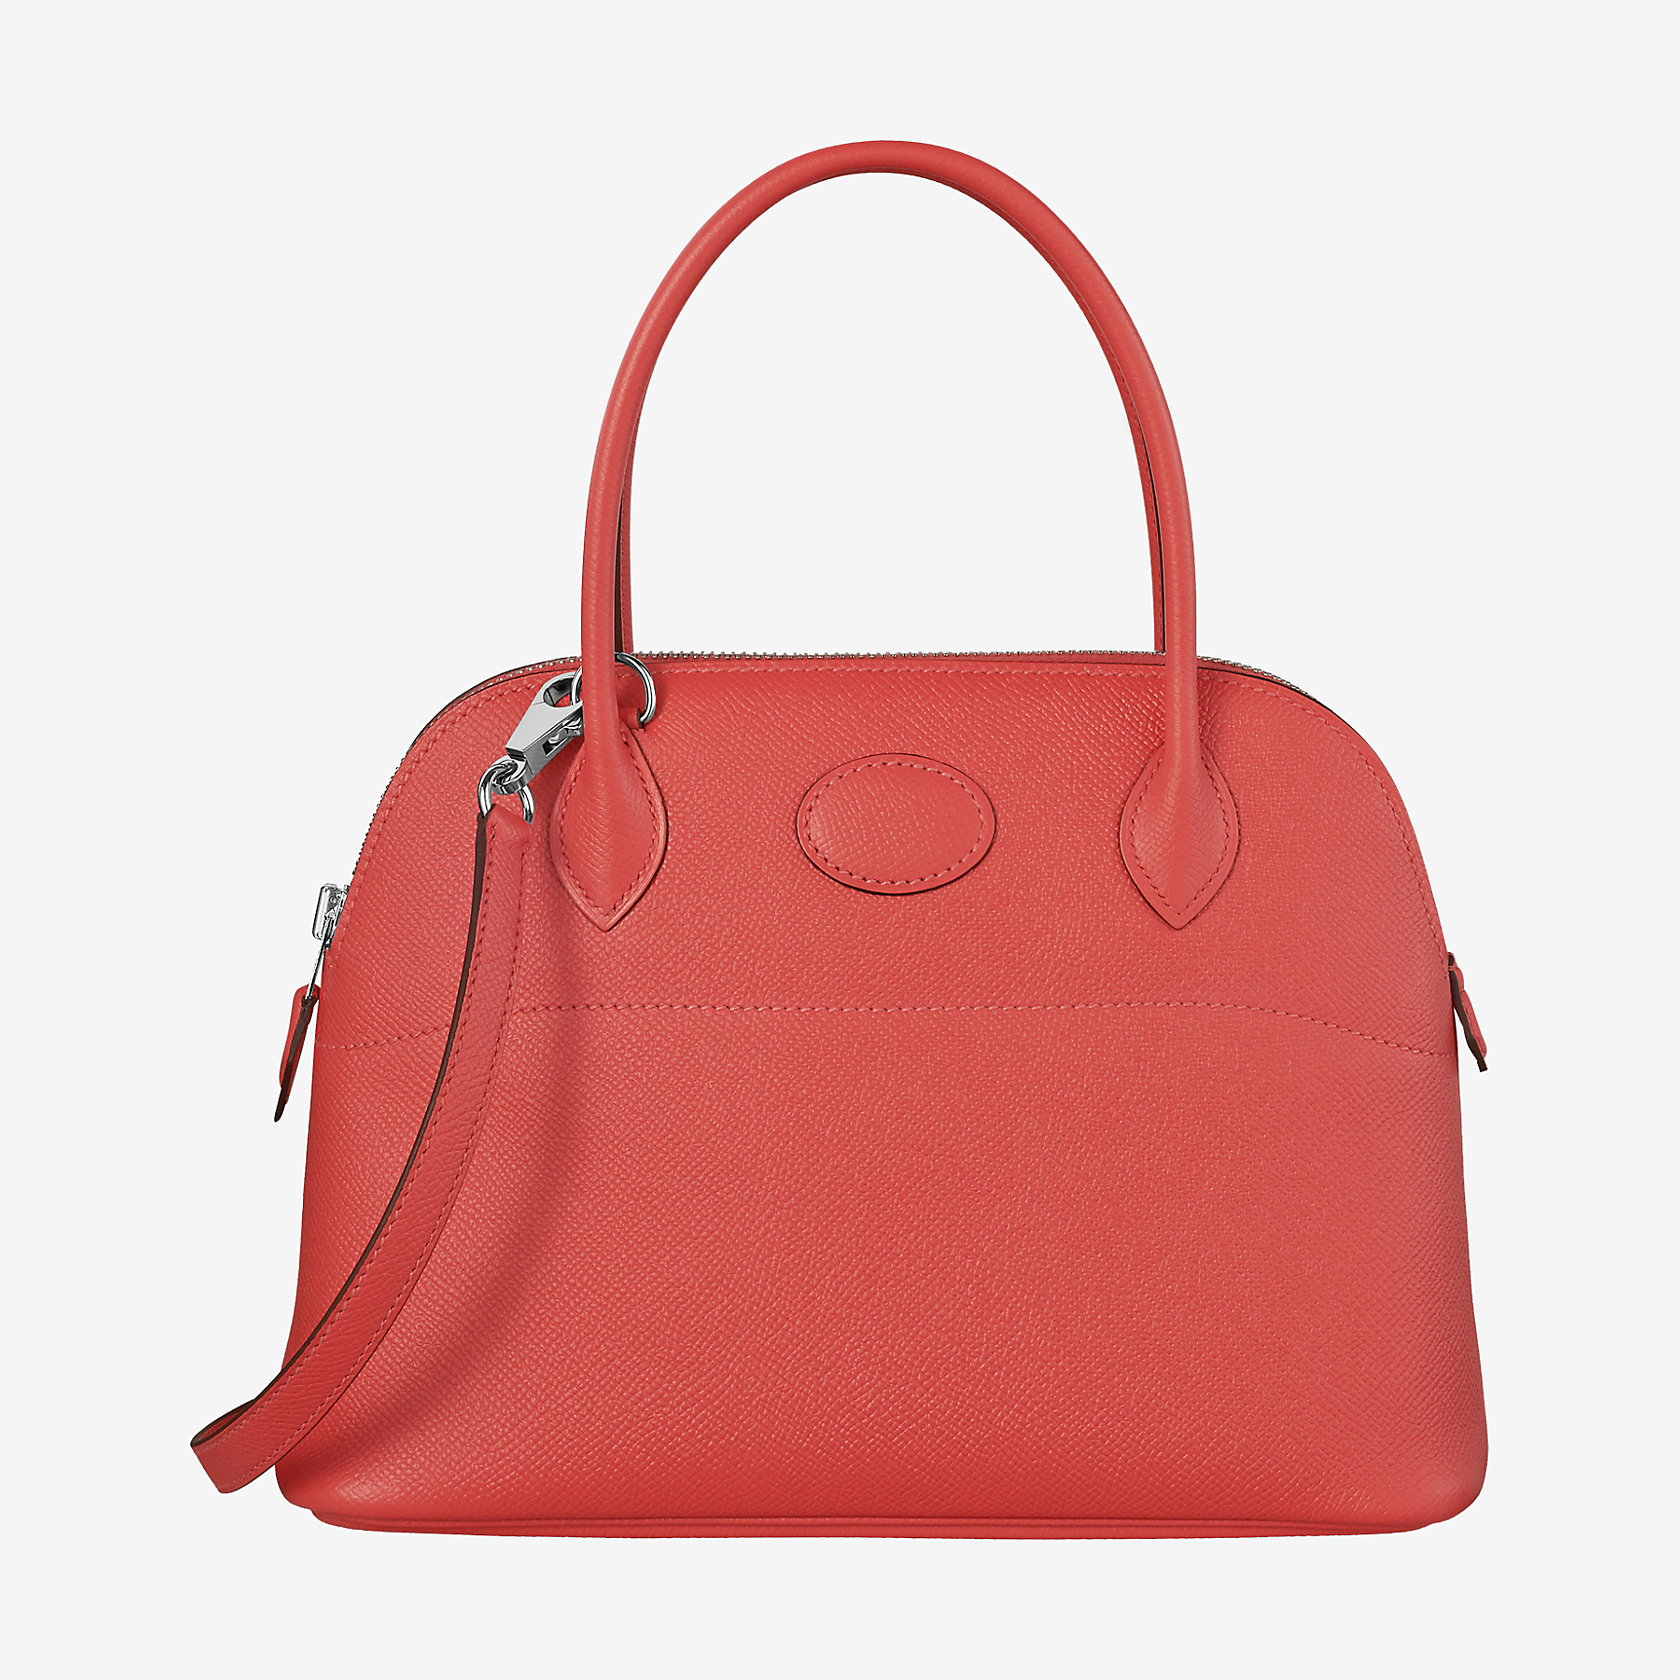 Hermes Bags Prices 2017